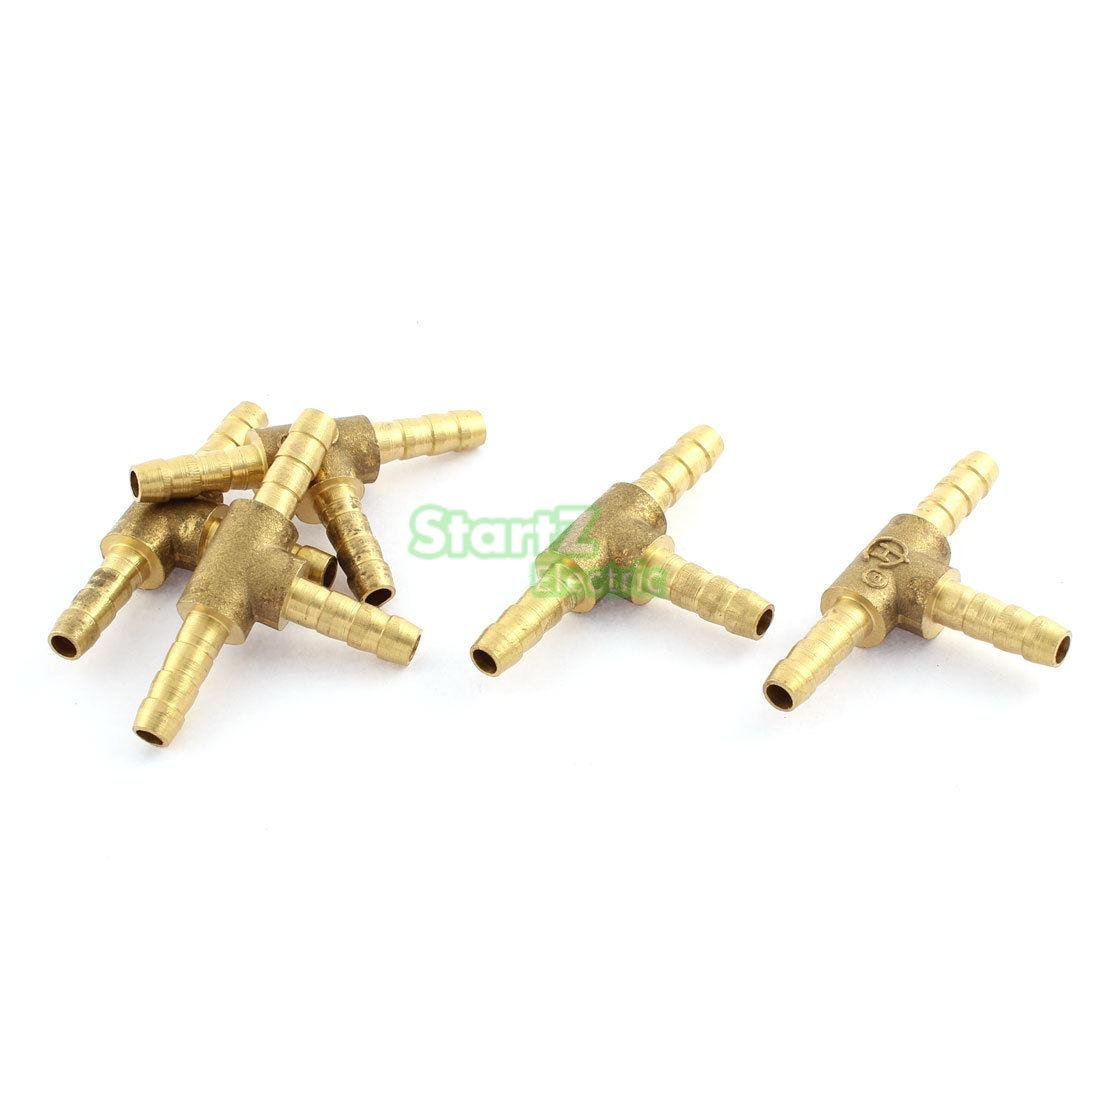 Maslin 5Pcs 6mm 1//4T Brass Barbed 3 Way Fuel Hose Joiner for Compressed Air Gas Oil